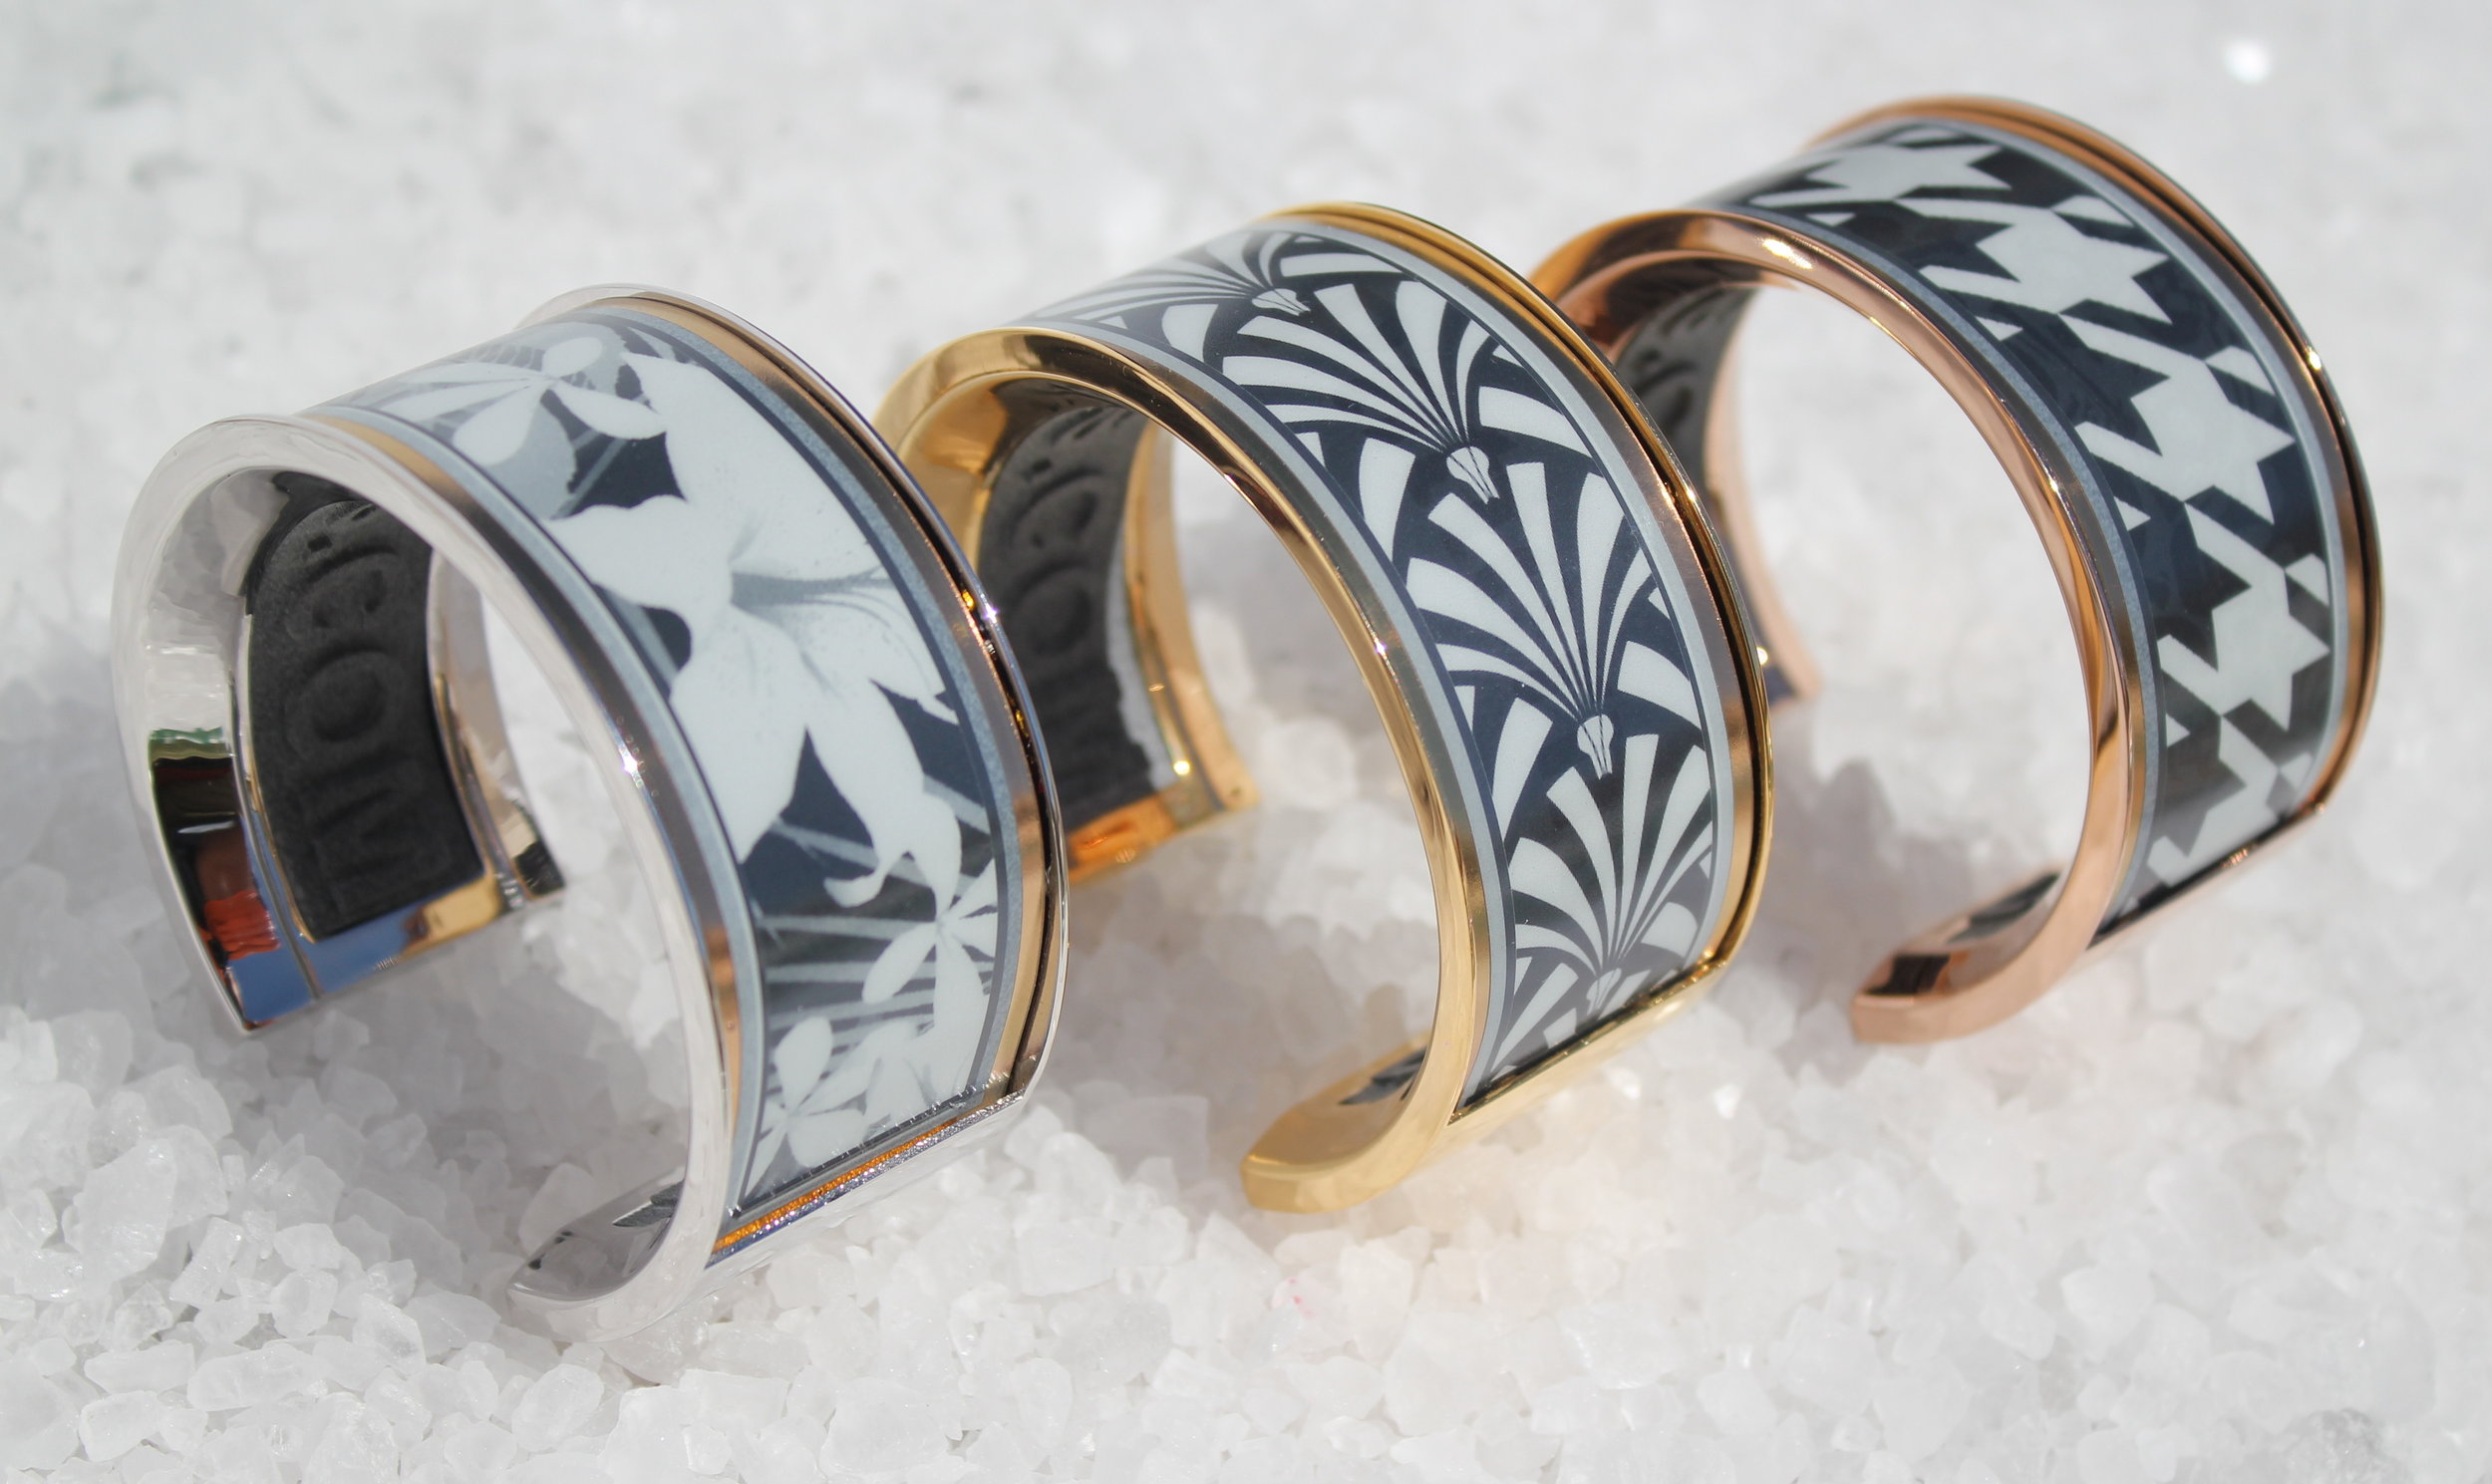 Venus Small in white rhodium, yellow gold, and red gold plating